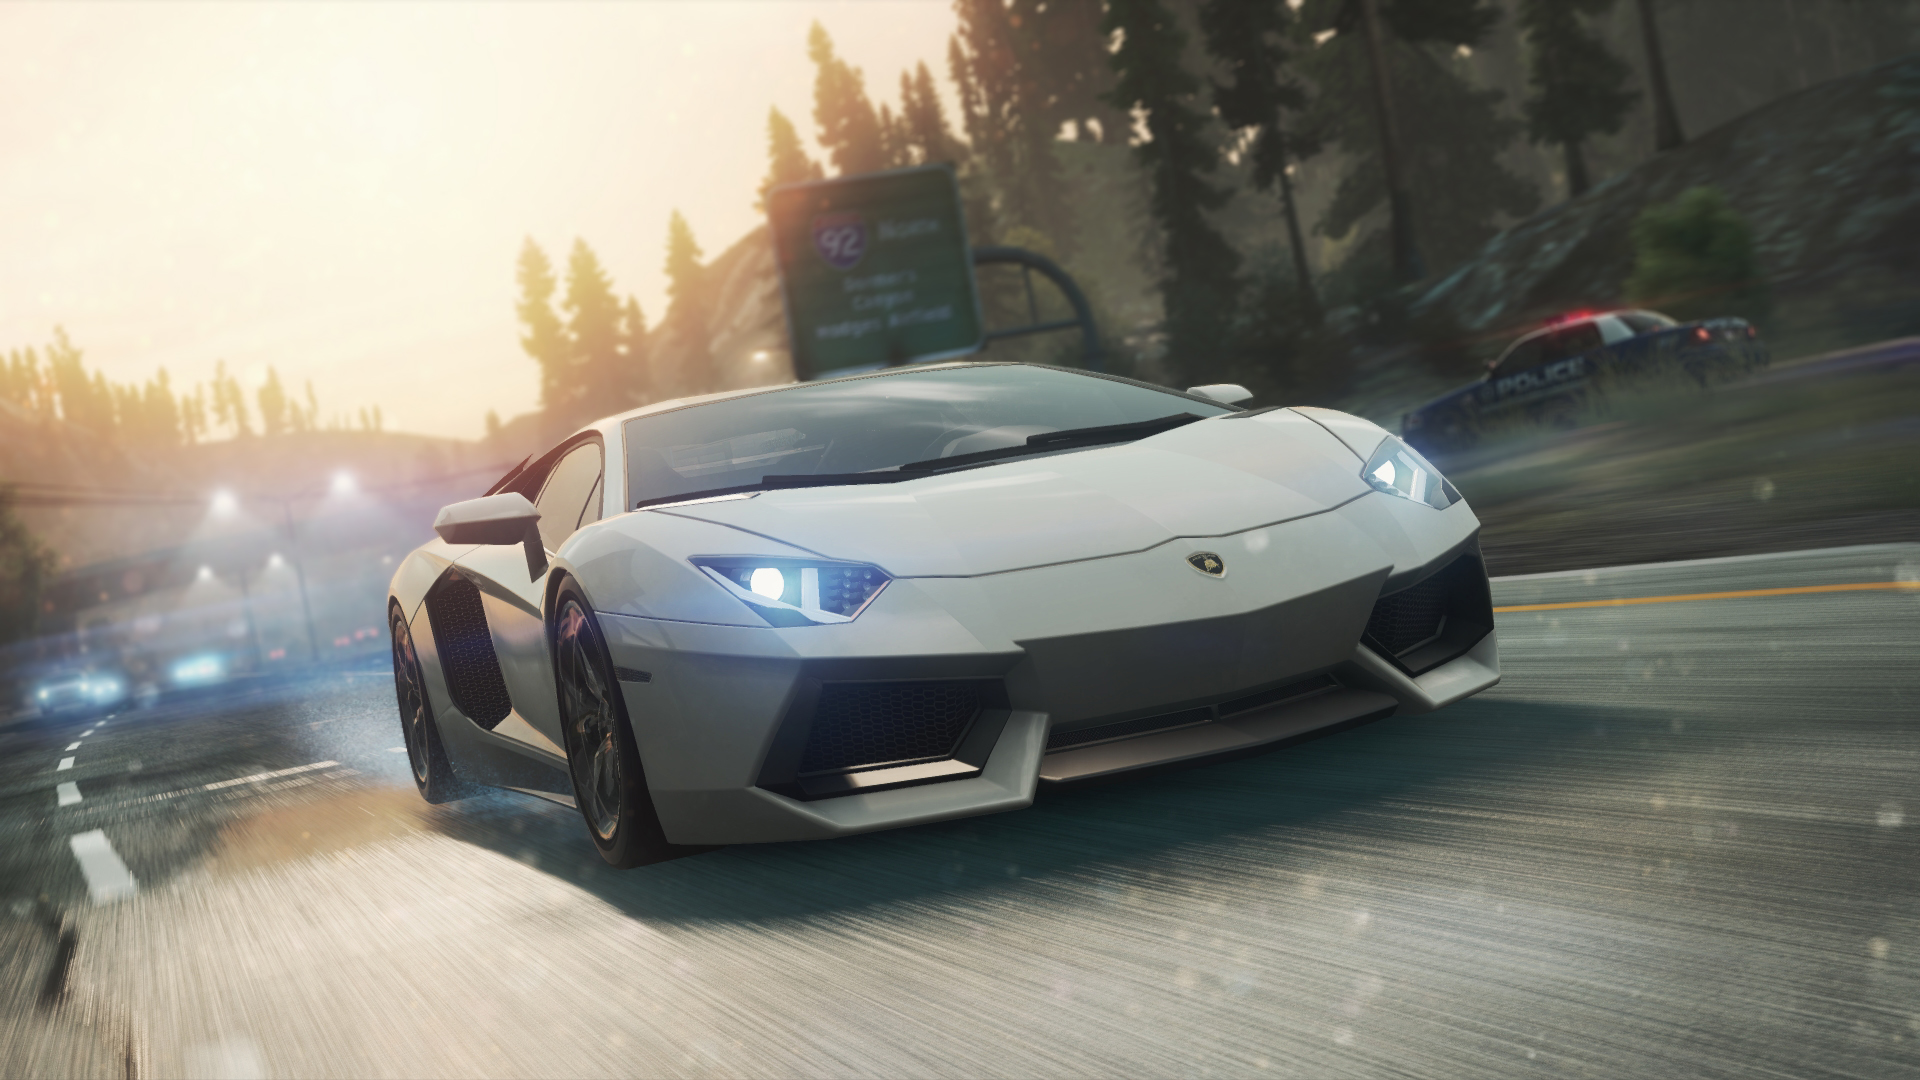 lamborghini reventon nfs with Lamborghini Aventador Lp 700 4 on Need for speed hot pursuit pc as well Nfs11 Italian Perfection 321244764 in addition Watch moreover Police Car Wallpapers likewise Cool Old Cars.